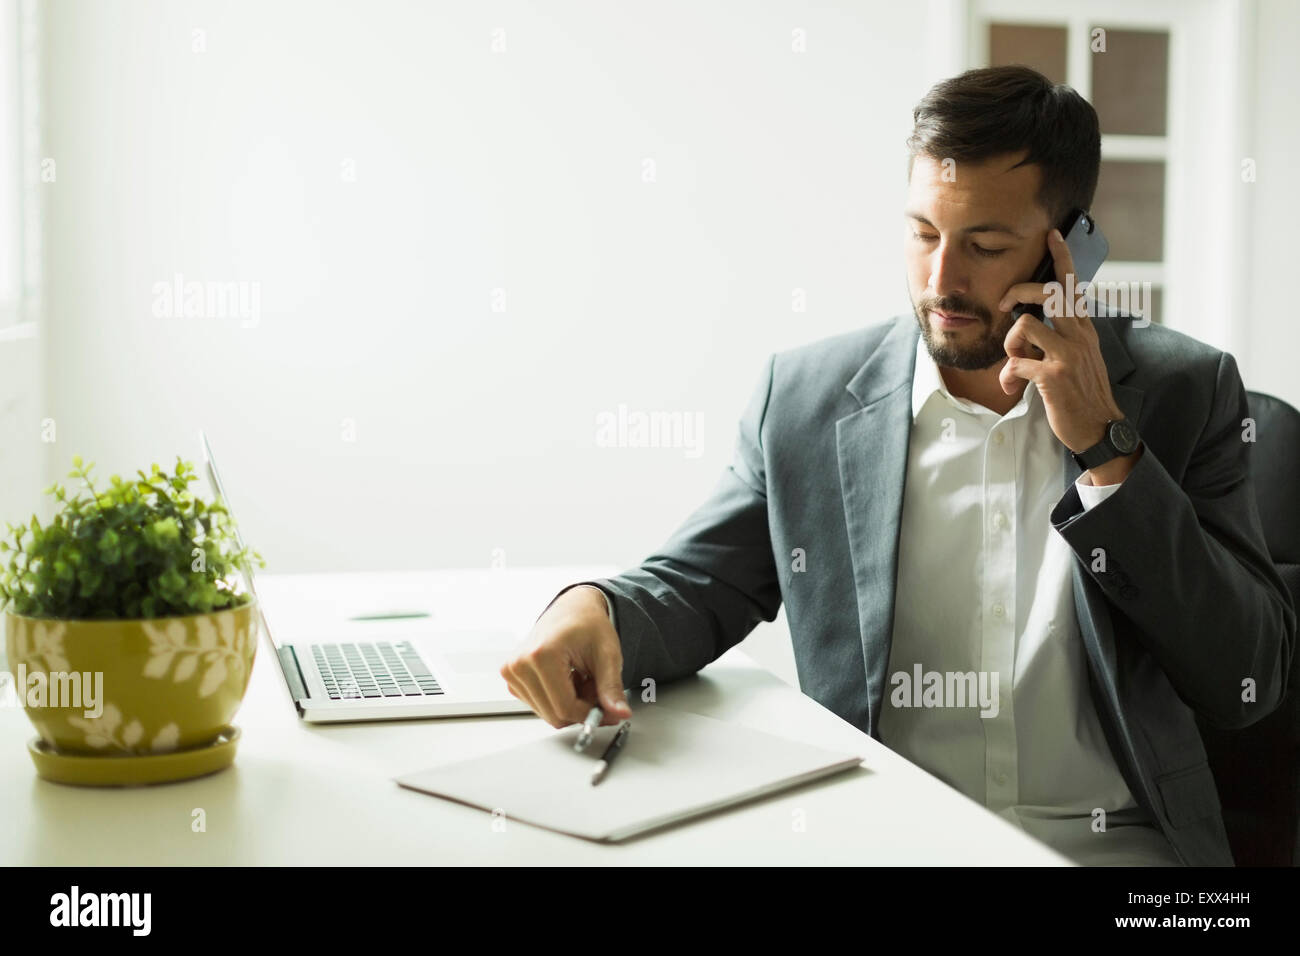 Young man sitting at desk and looking at laptop Stock Photo